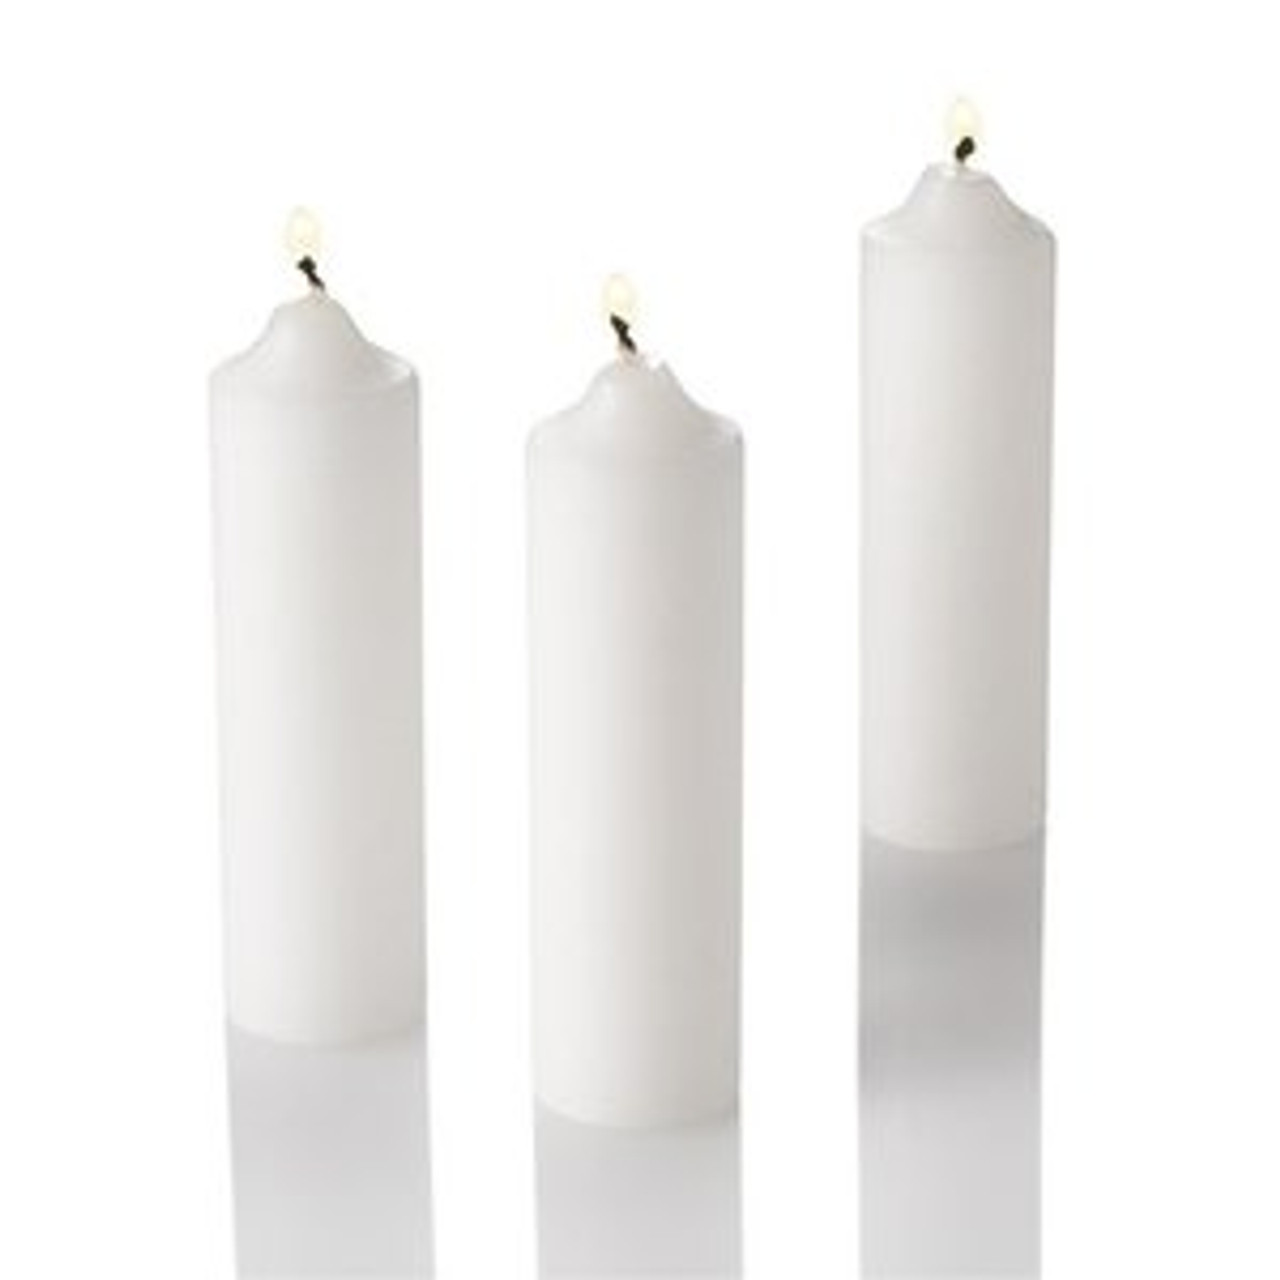 White Cartridge Candle Lamp Candle - Emergency Candles (200 pcs per case)